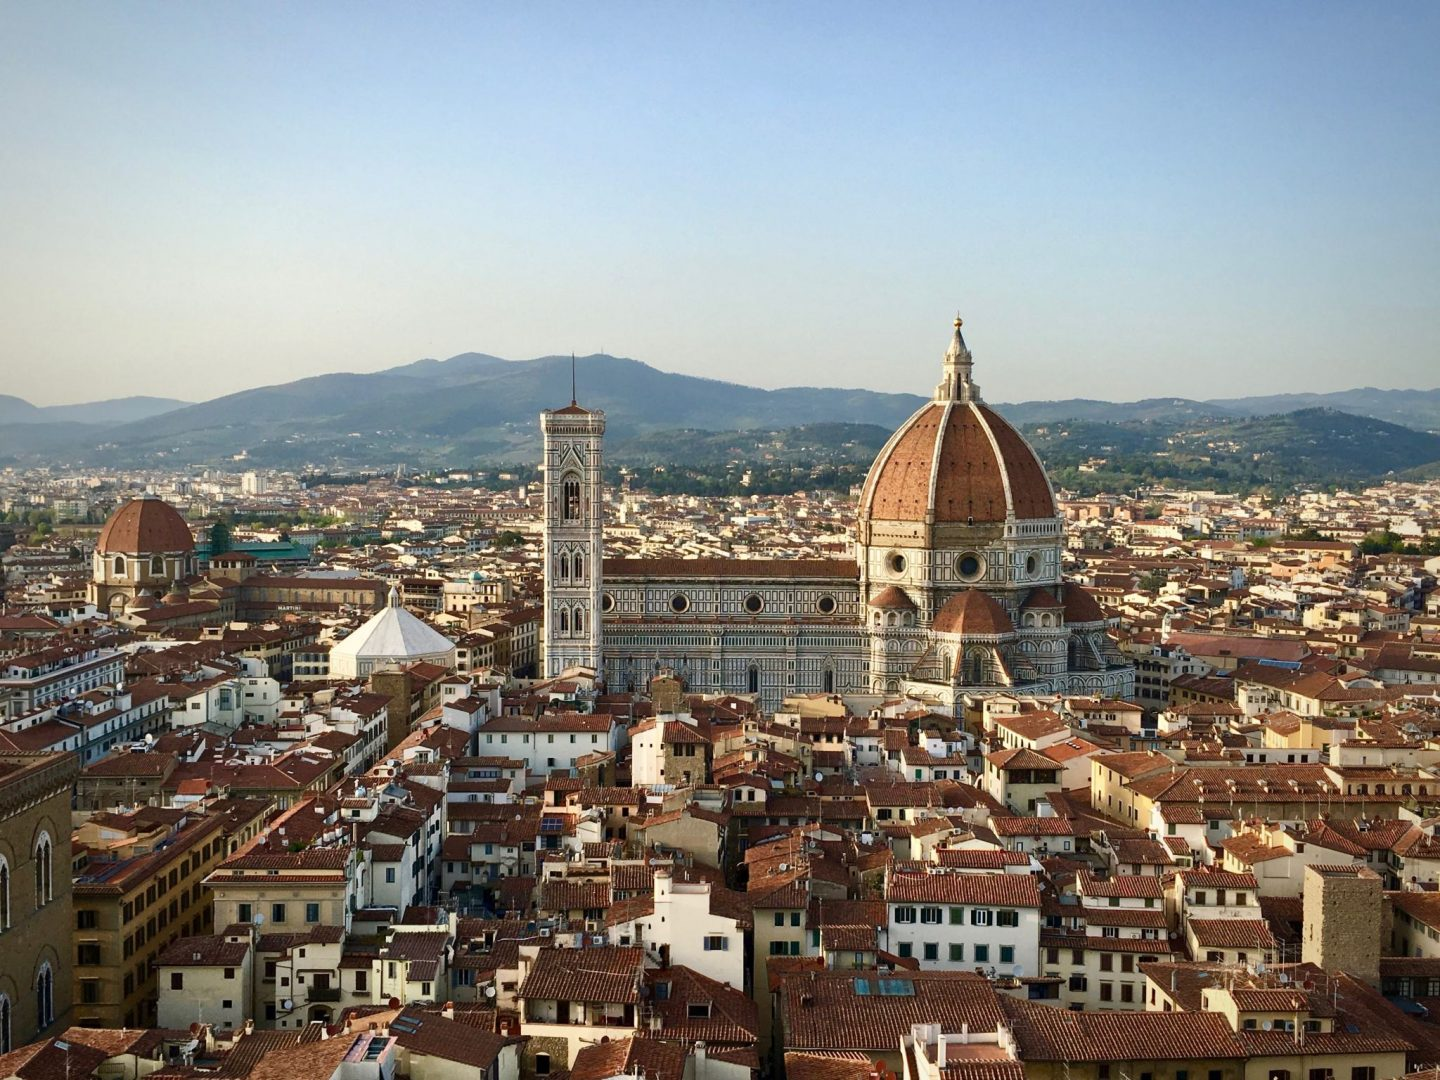 24 hour Travel | Florence, Italy (Part 2)